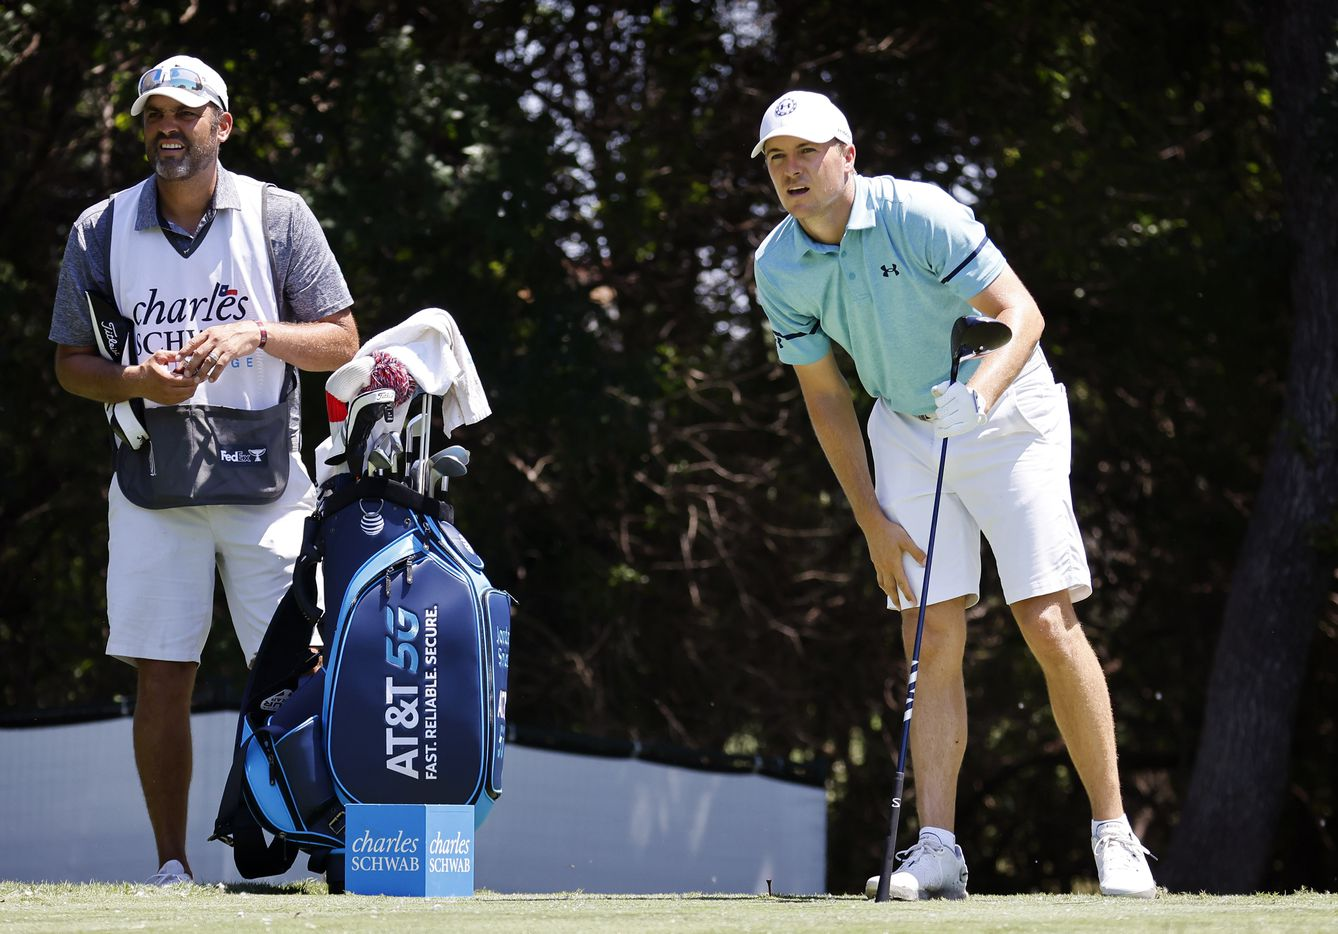 Golfer Jordan Spieth watches his tee shot on No. 12 during his Charles Schwab Challenge Colonial Pro-Am round at the Colonial Country Club in Fort Worth, Wednesday, May 26, 2021. (Tom Fox/The Dallas Morning News)